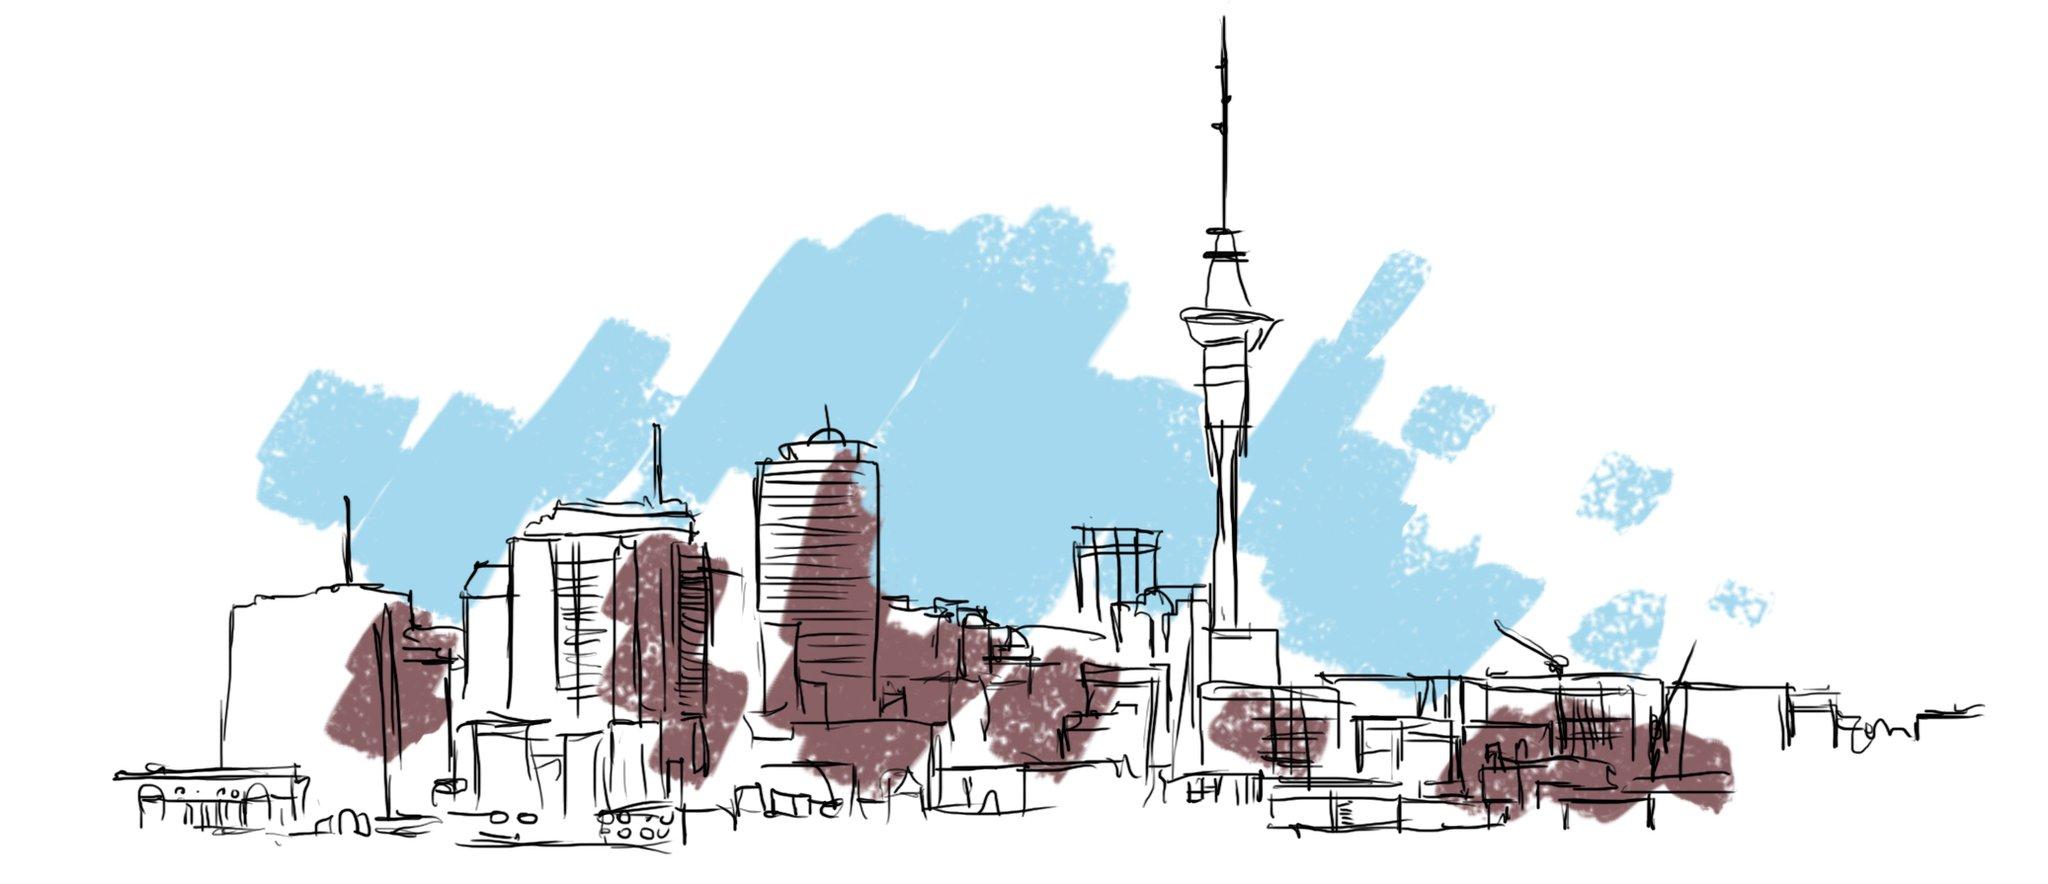 auckland-city-cityscape-drawing-sketch-izak